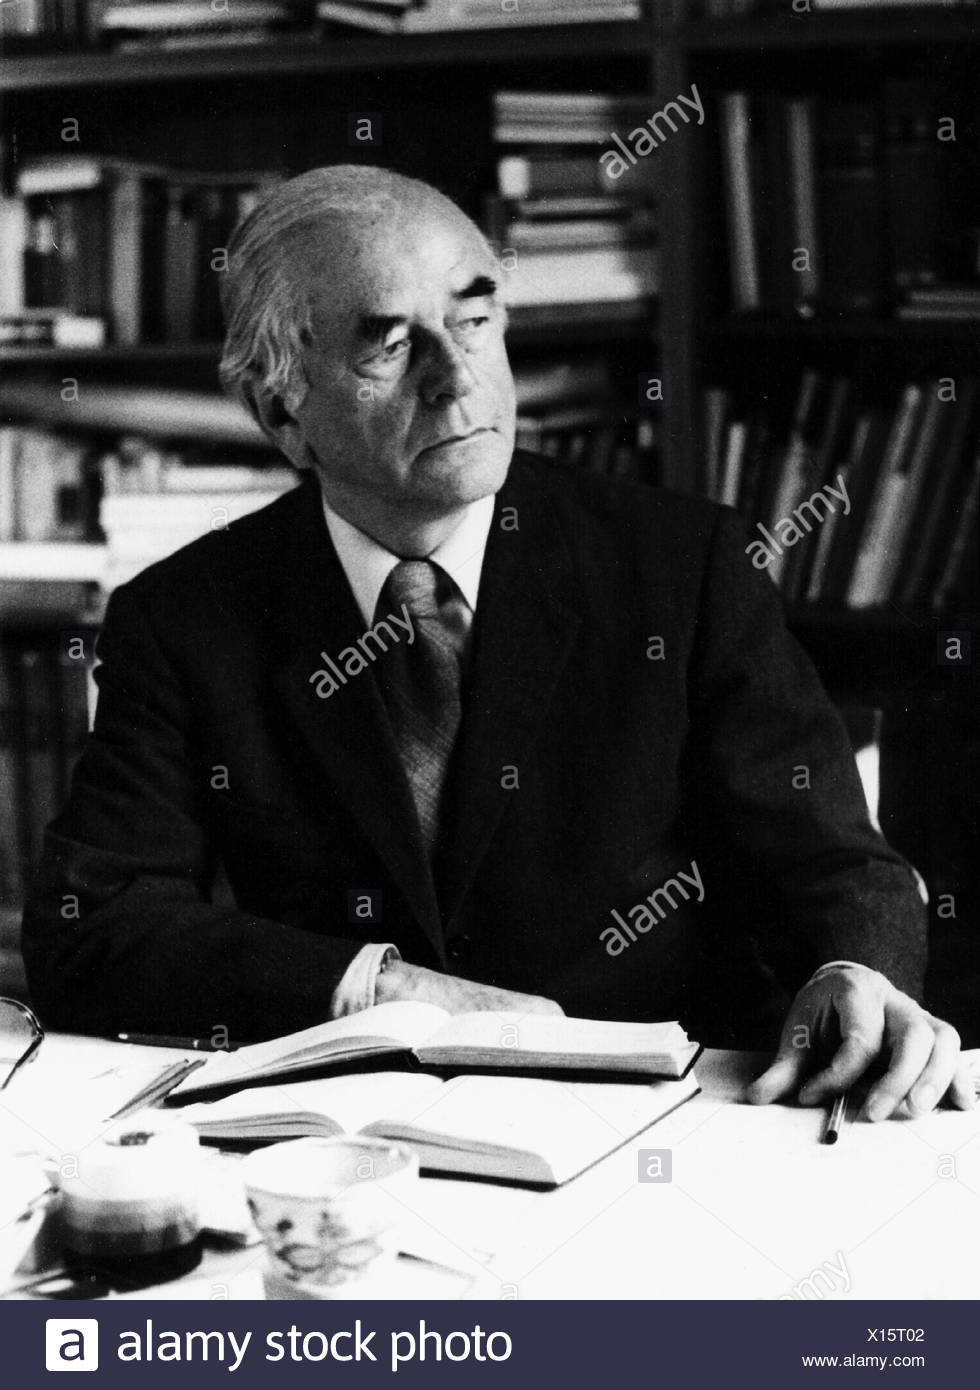 Speer, Albert, 19.3.1905 - 1.9.1981, German architect, politician (NSDAP), Minister of Armaments and War Production in Nazi Germany 1942 - 1945, half length, sitting at desk, half length, 1970s, , Additional-Rights-Clearances-NA - Stock Image